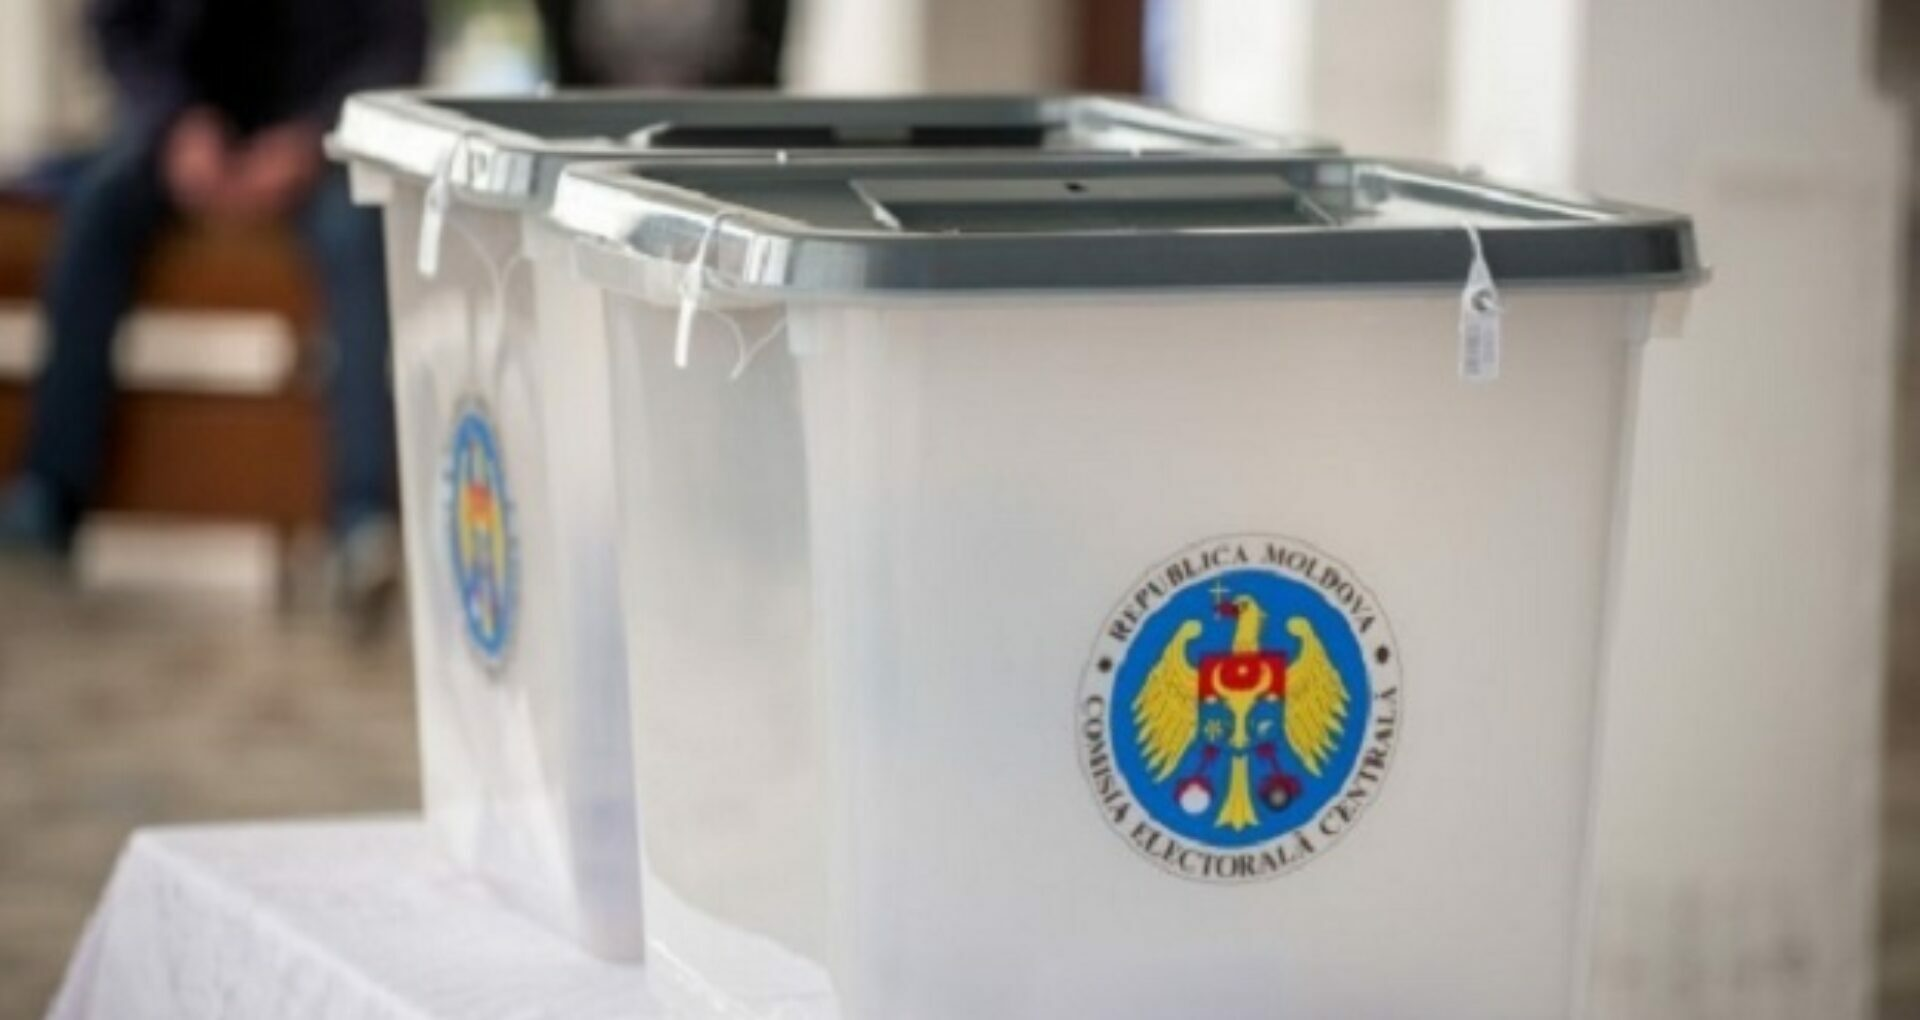 MOLDOVAN PRESIDENTIAL ELECTIONS: Financial Disclosures of the Registered Candidates